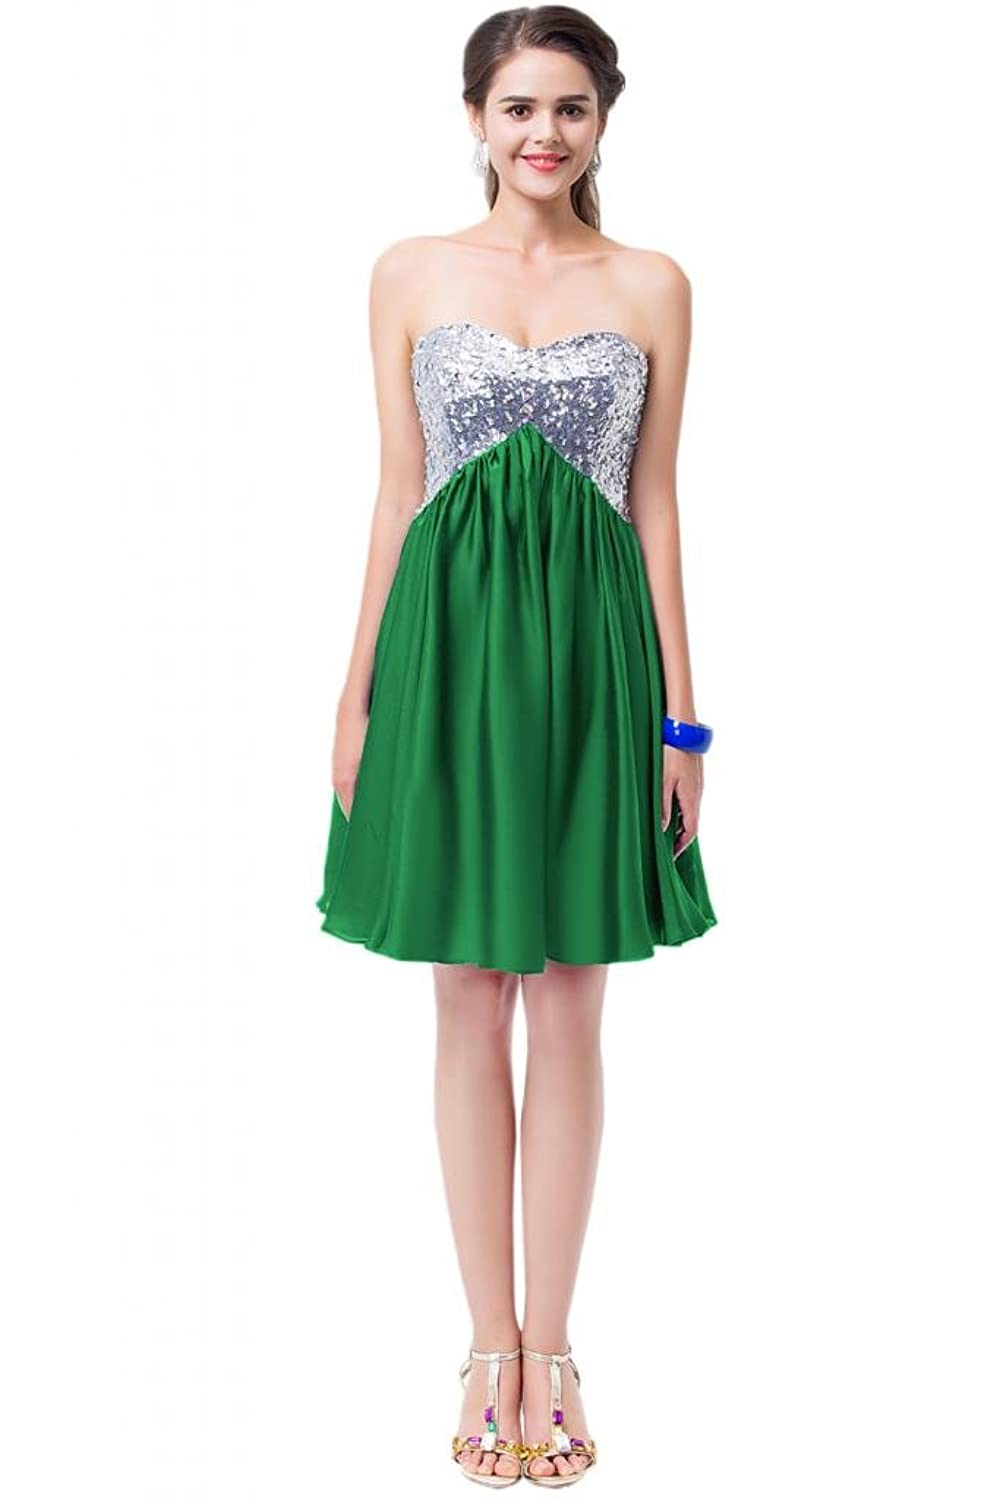 Sunvary Crystal Accented Women Short Column Sexy Lace up Party Pageant Dress